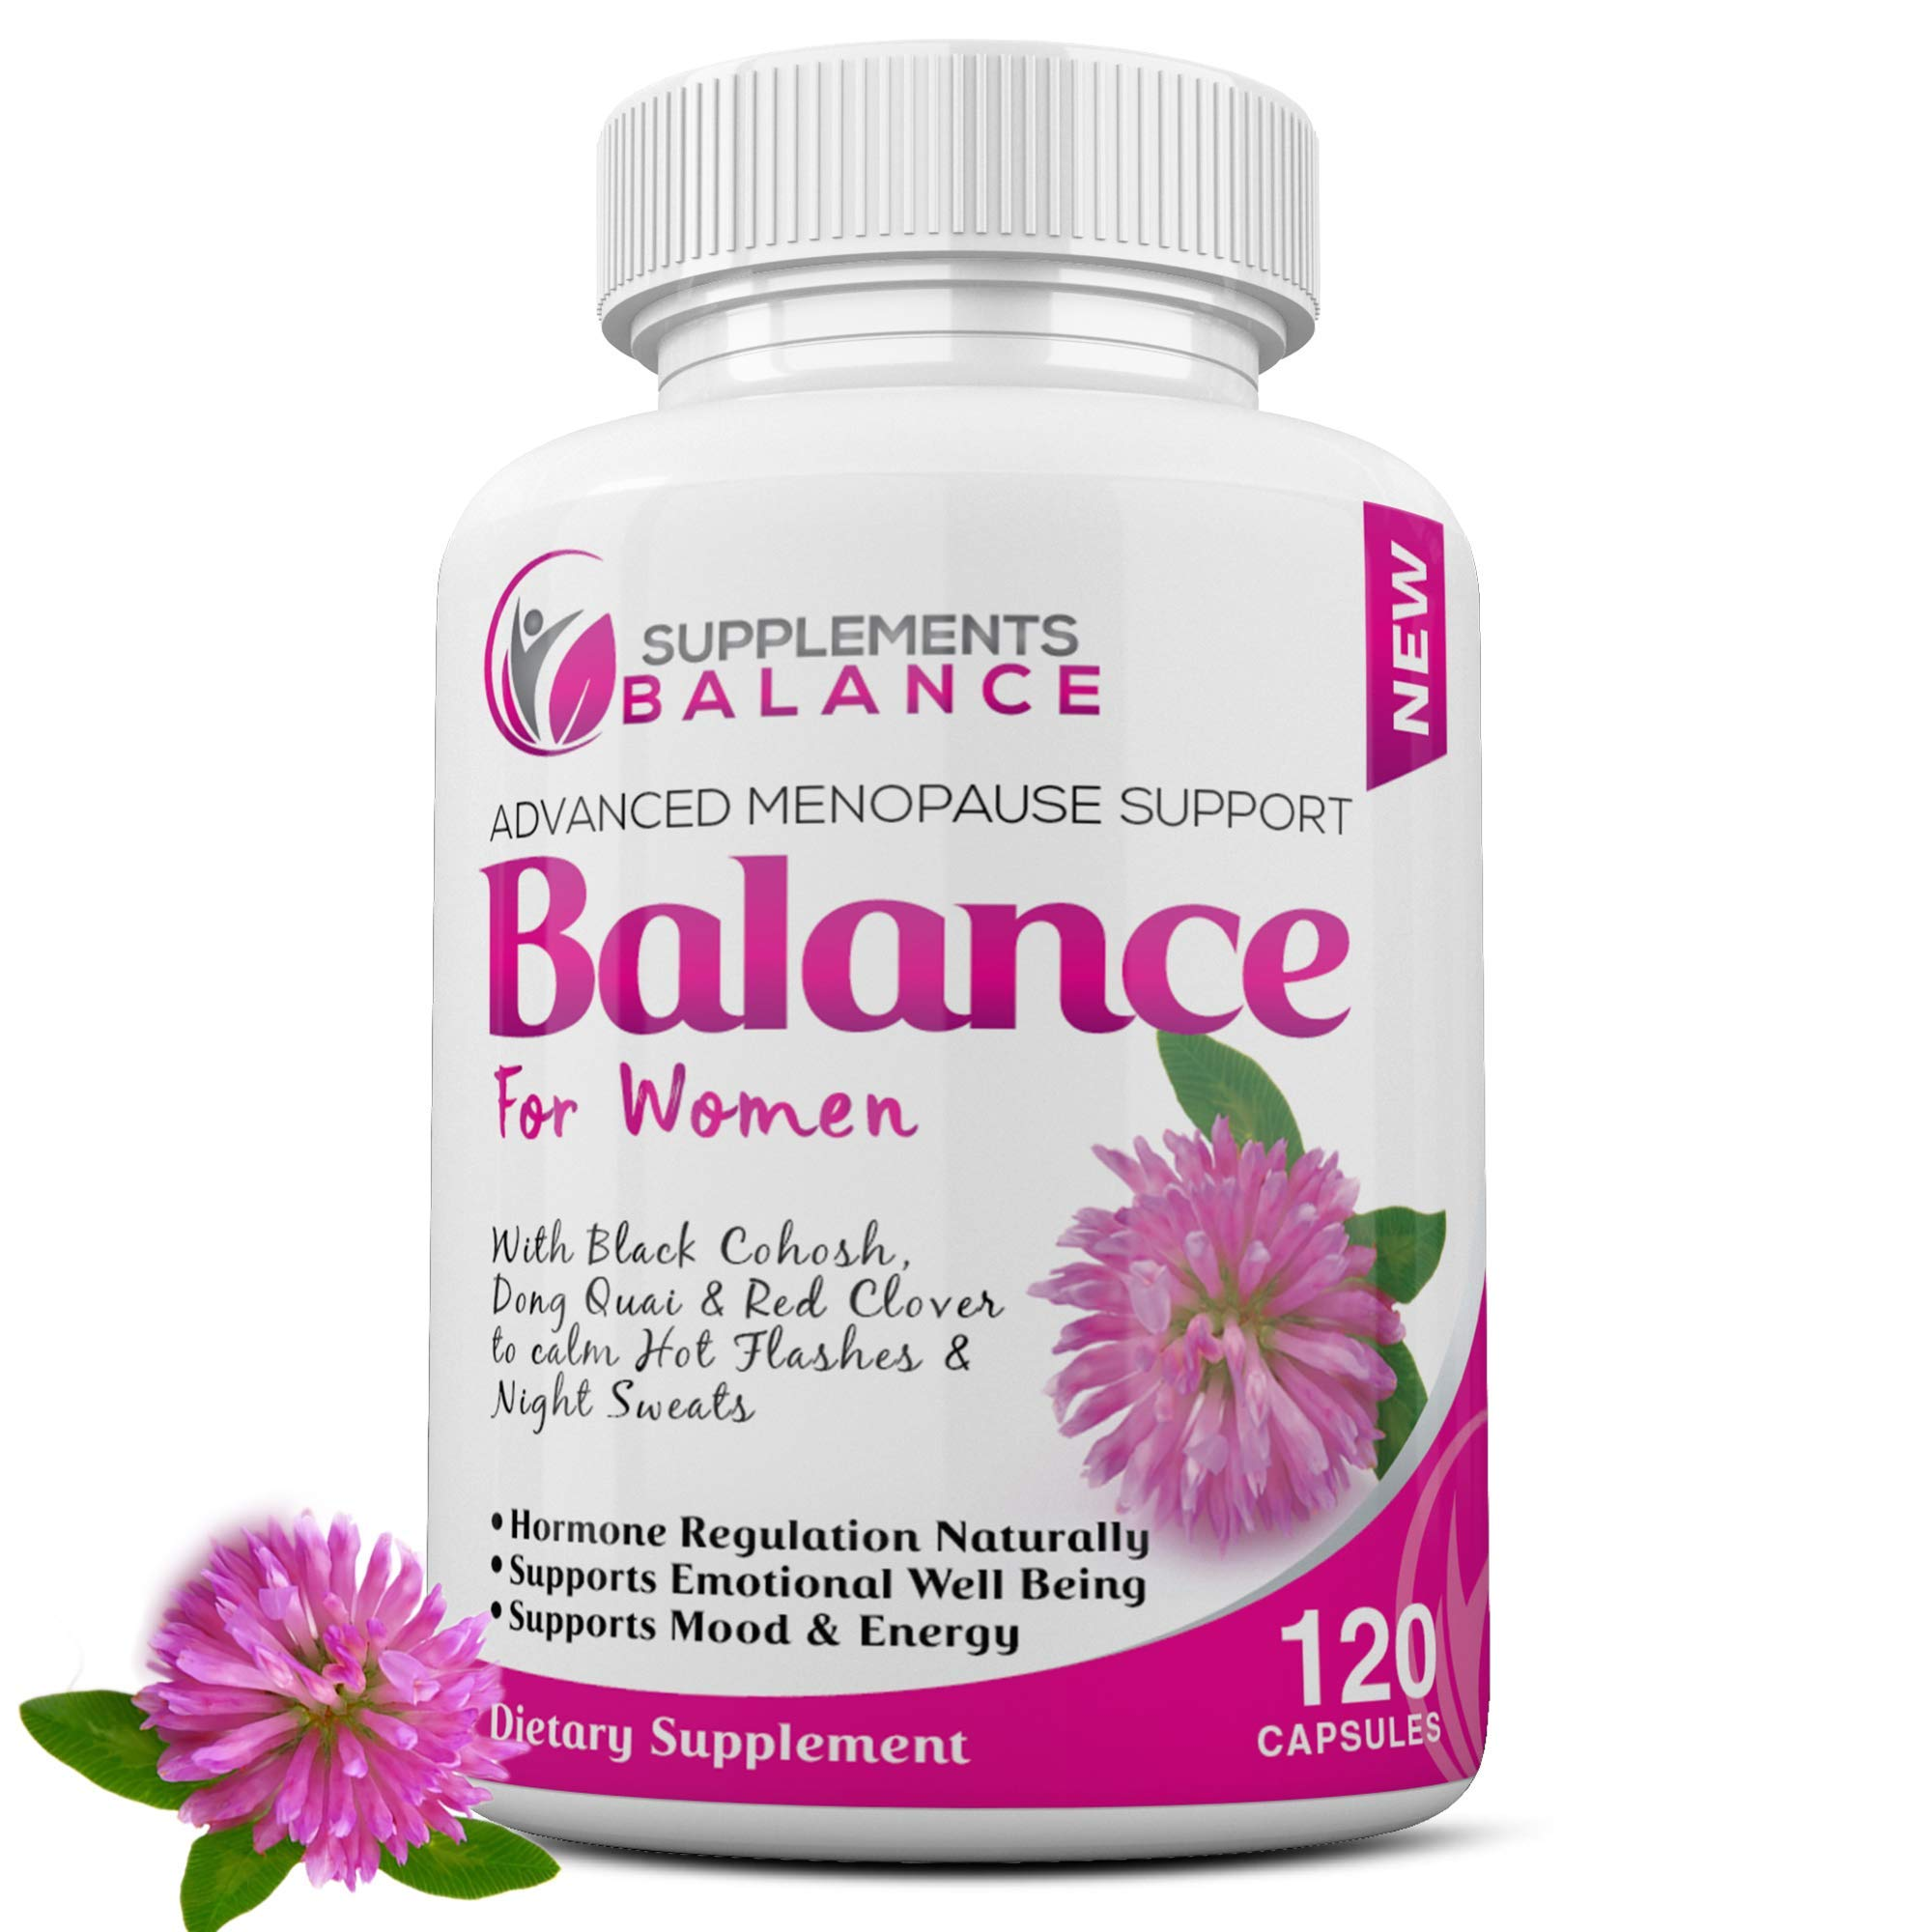 Hormone Balance & Menopause Relief for Women   120 Capsules 2 Months of Hot Flash   Support for Women   Black Cohosh, Dong Quai, Sage, Red Clover, Licorice & Soy Isoflavones   Estrogen Pills for Women